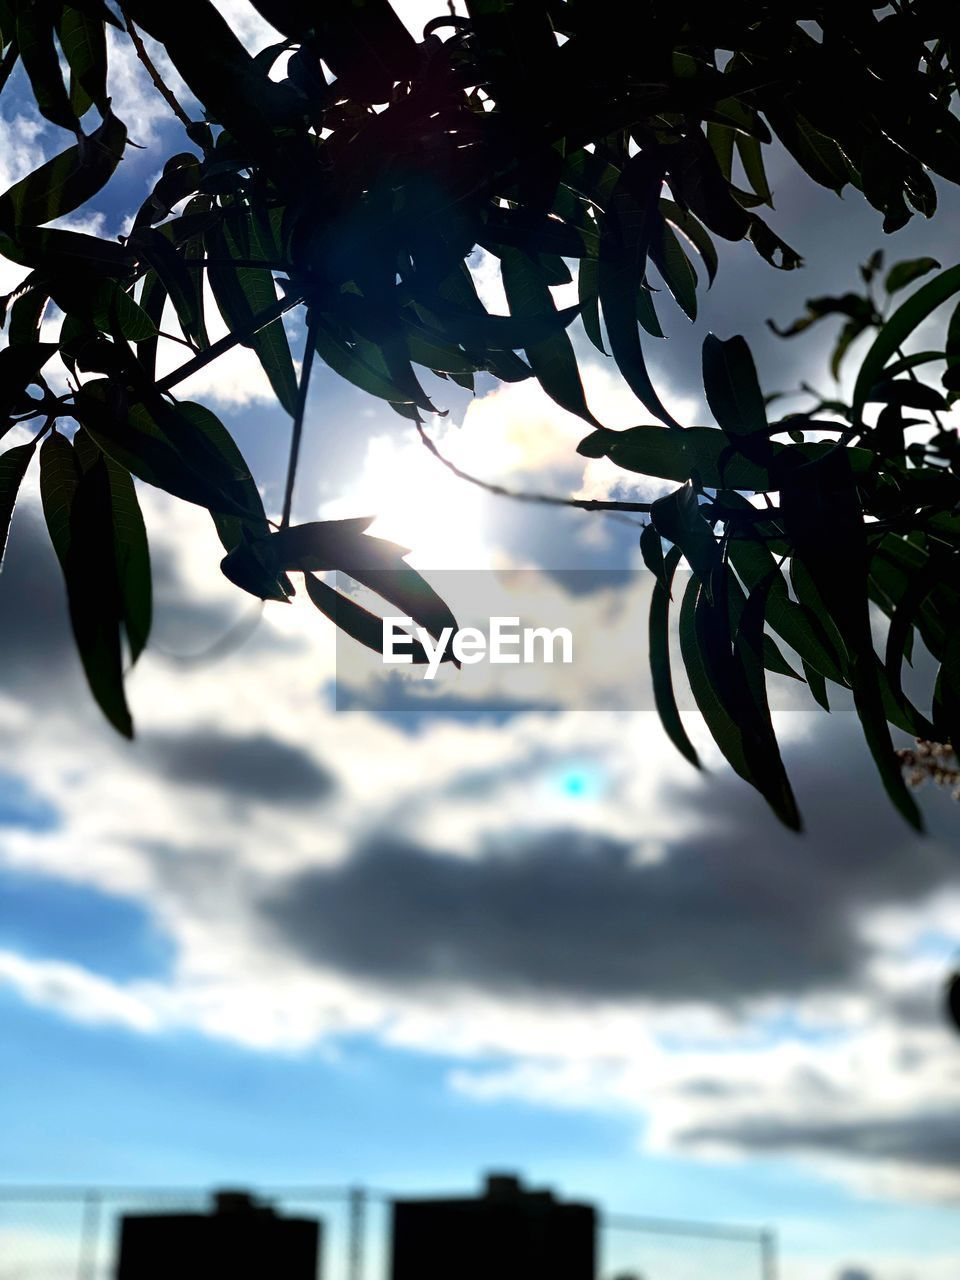 plant, sky, growth, tree, cloud - sky, plant part, leaf, beauty in nature, nature, low angle view, no people, branch, outdoors, day, close-up, tranquility, sunlight, silhouette, freshness, selective focus